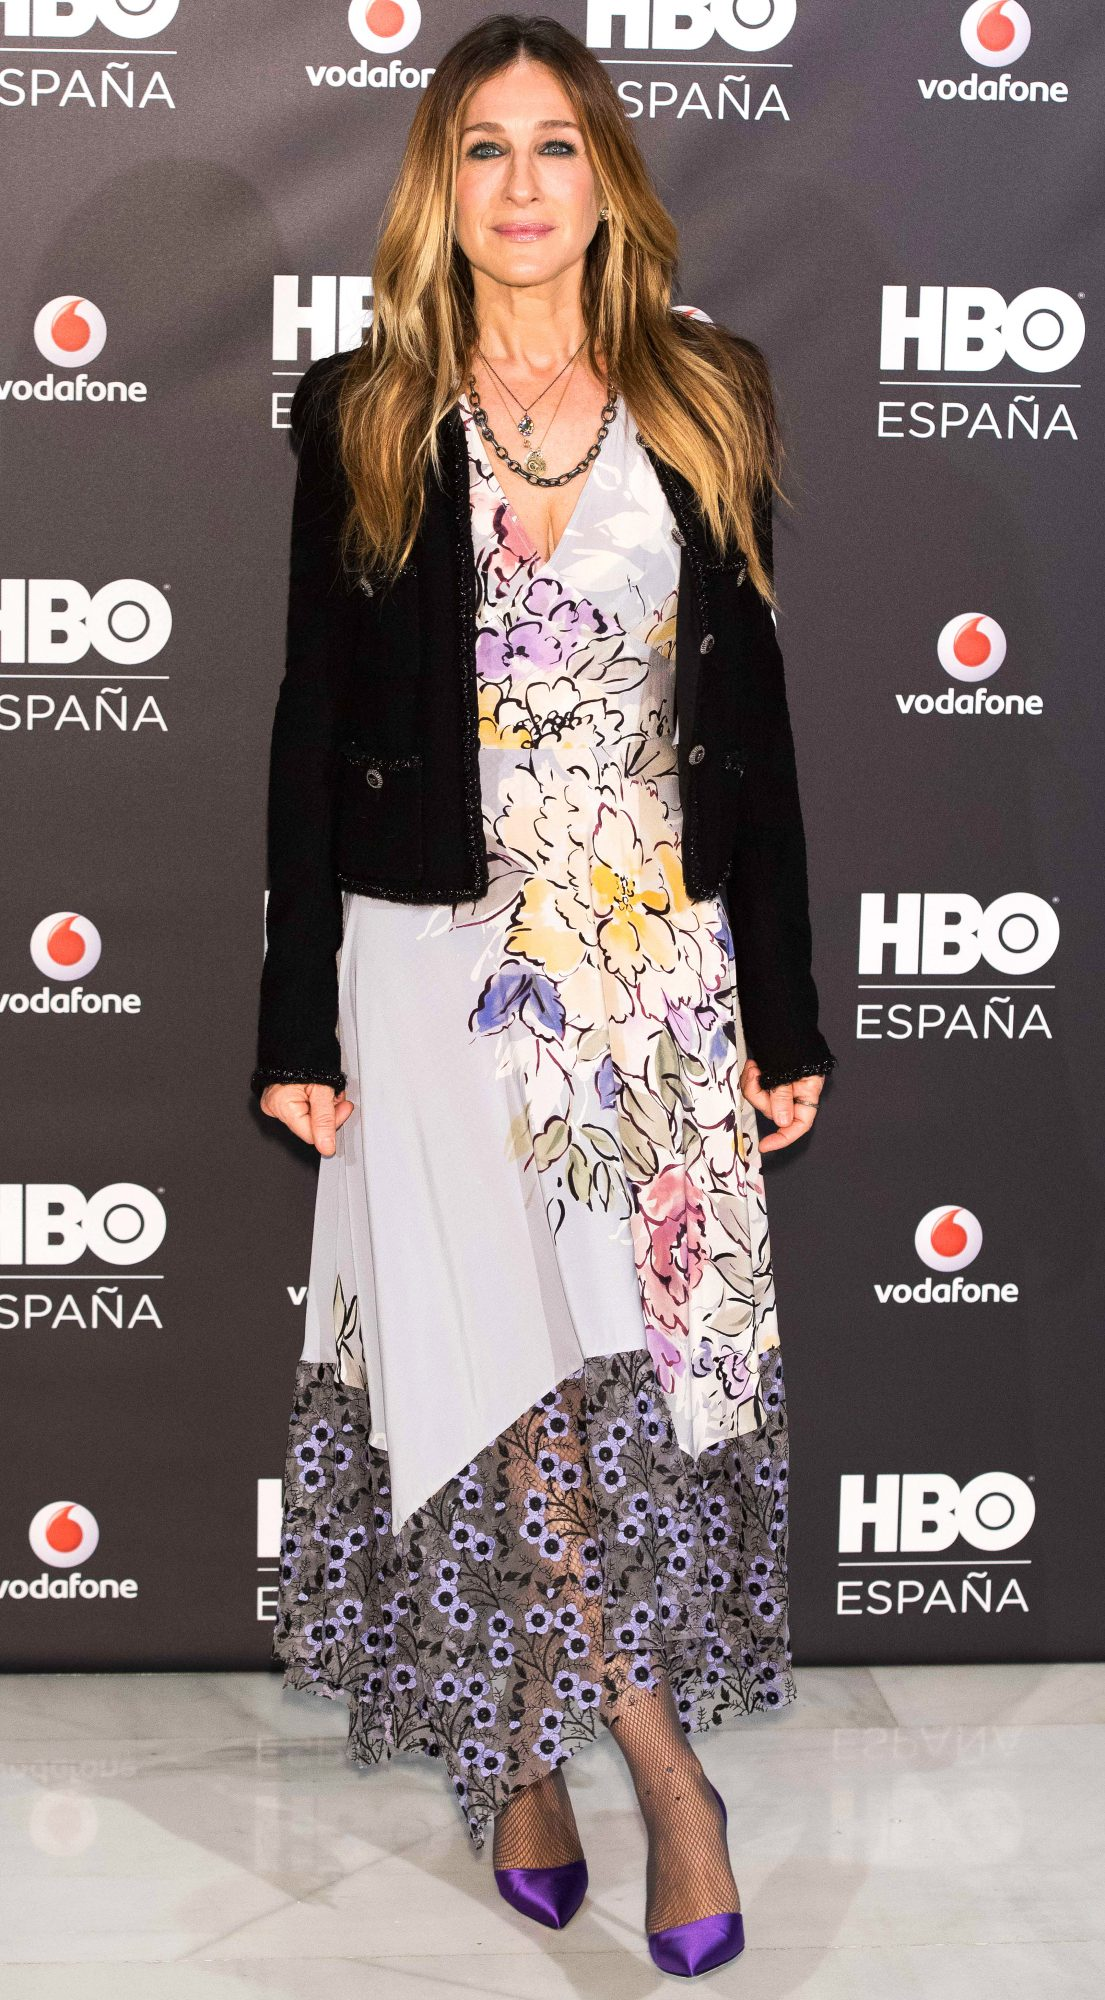 Stars attend the HBO Spain presentation at URSO Hotel in Madrid